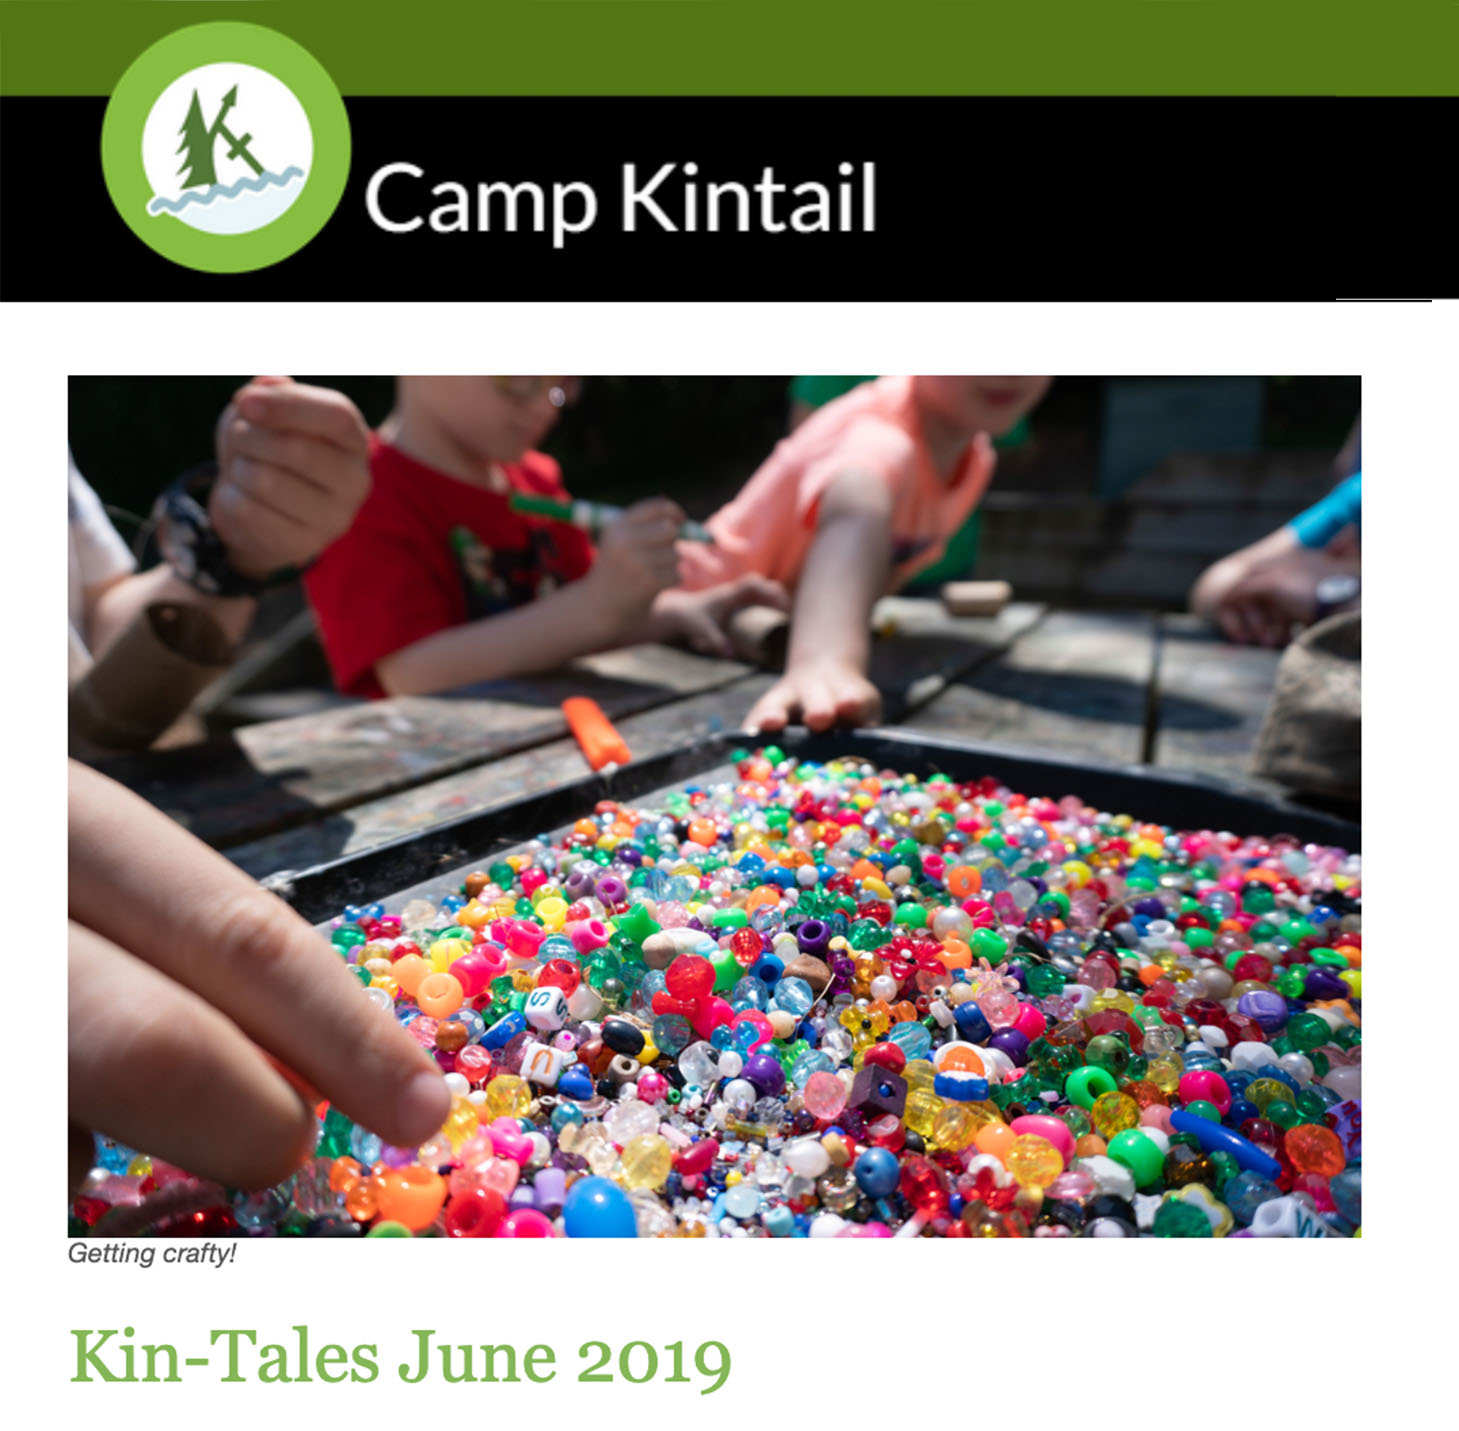 Title text: Kin-Tales June 2019. Image: Beads.